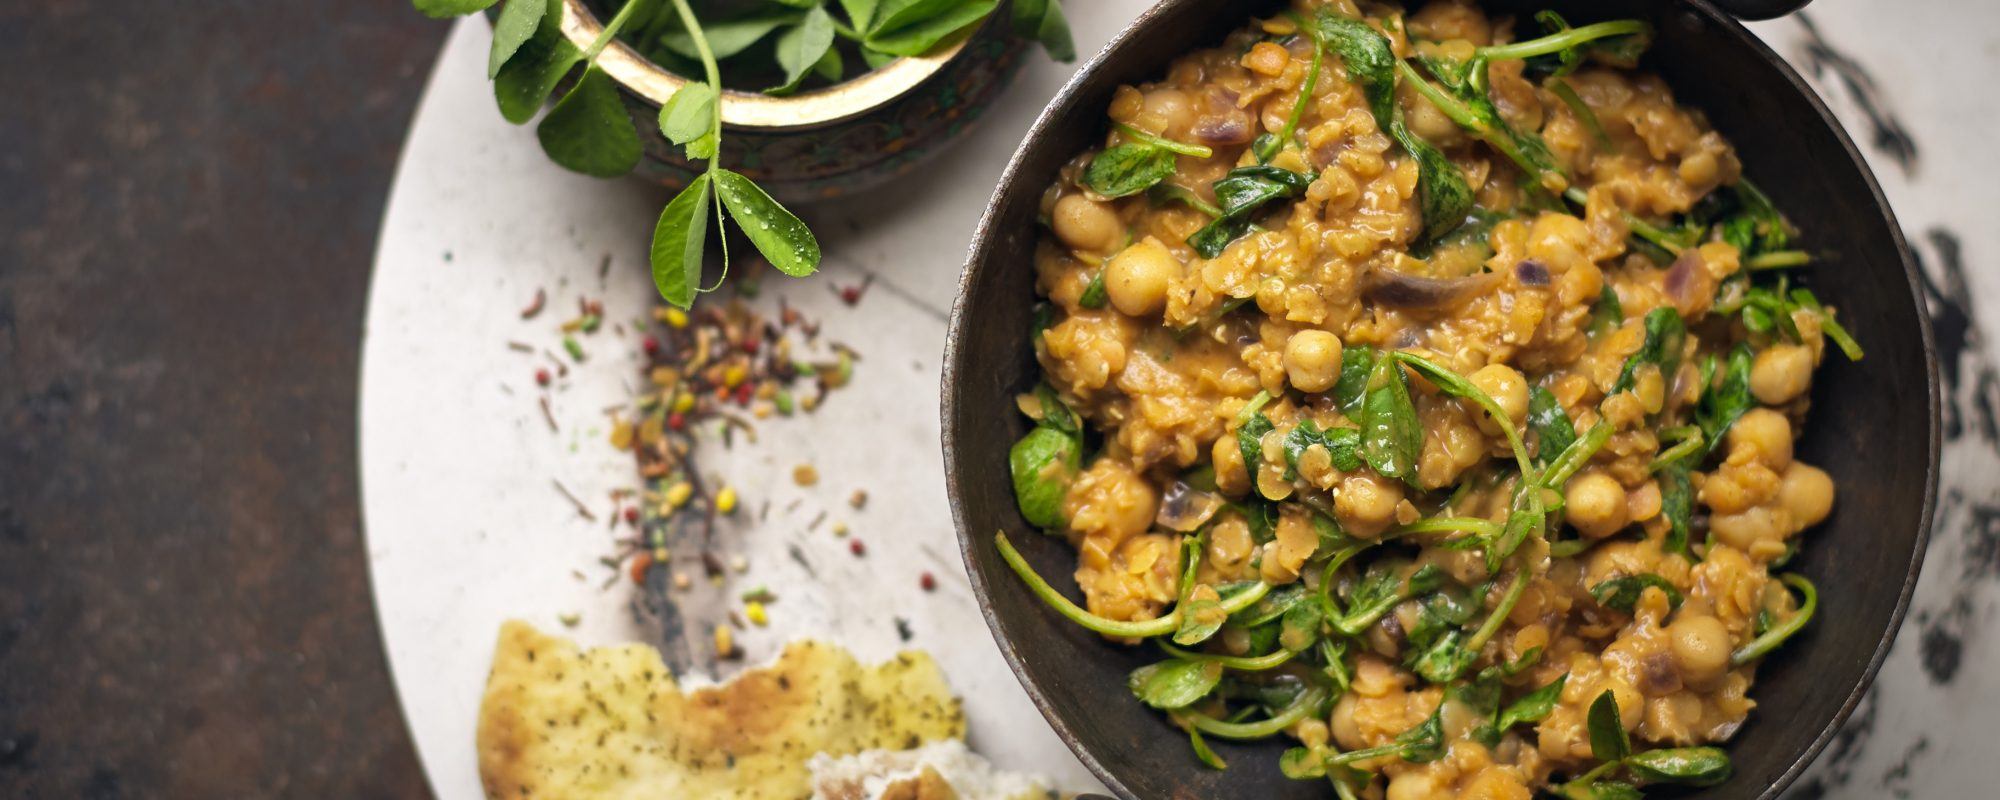 Pea Shoots and Chickpea Coconut Dahl